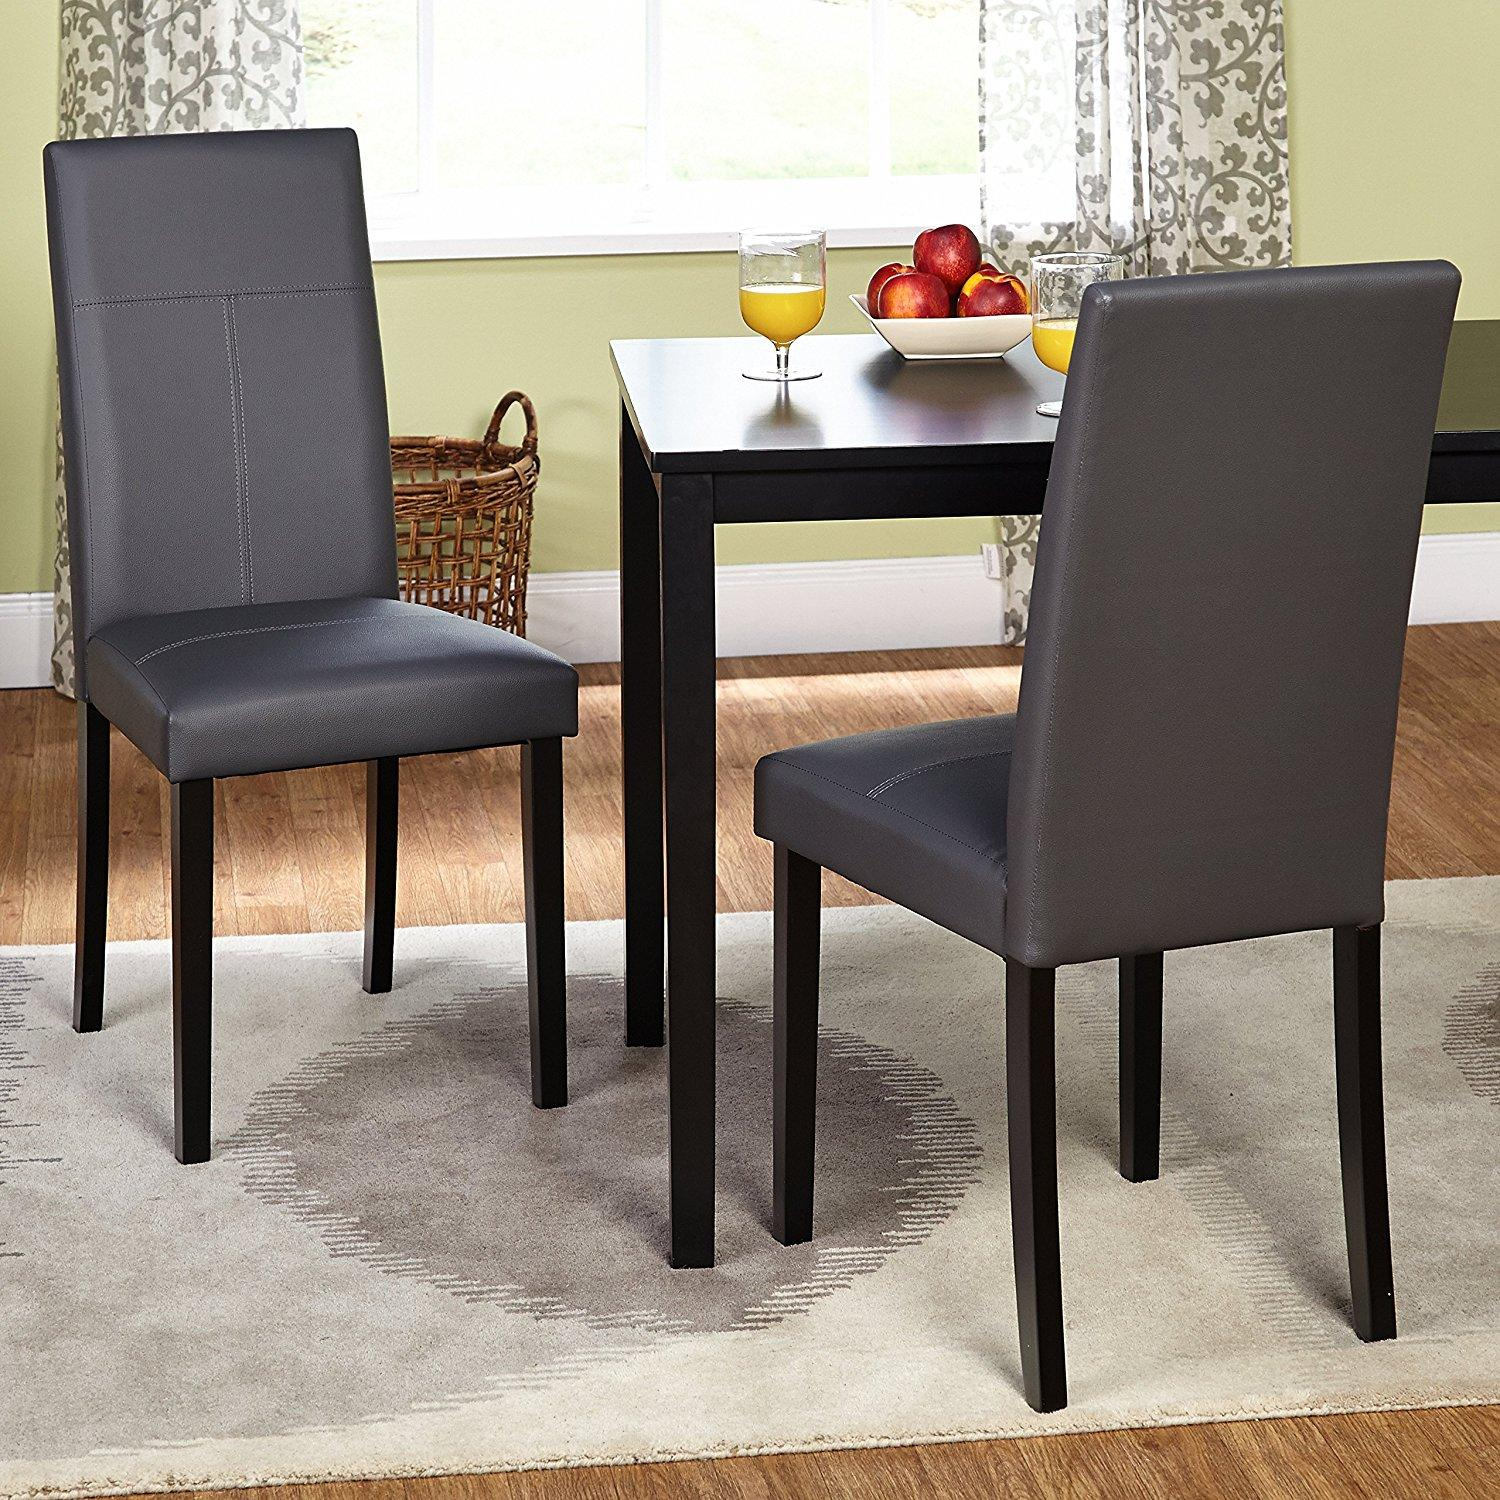 Amazon Dining Chairs: Amazon.com: Target Marketing Systems Set Of 2 Upholstered